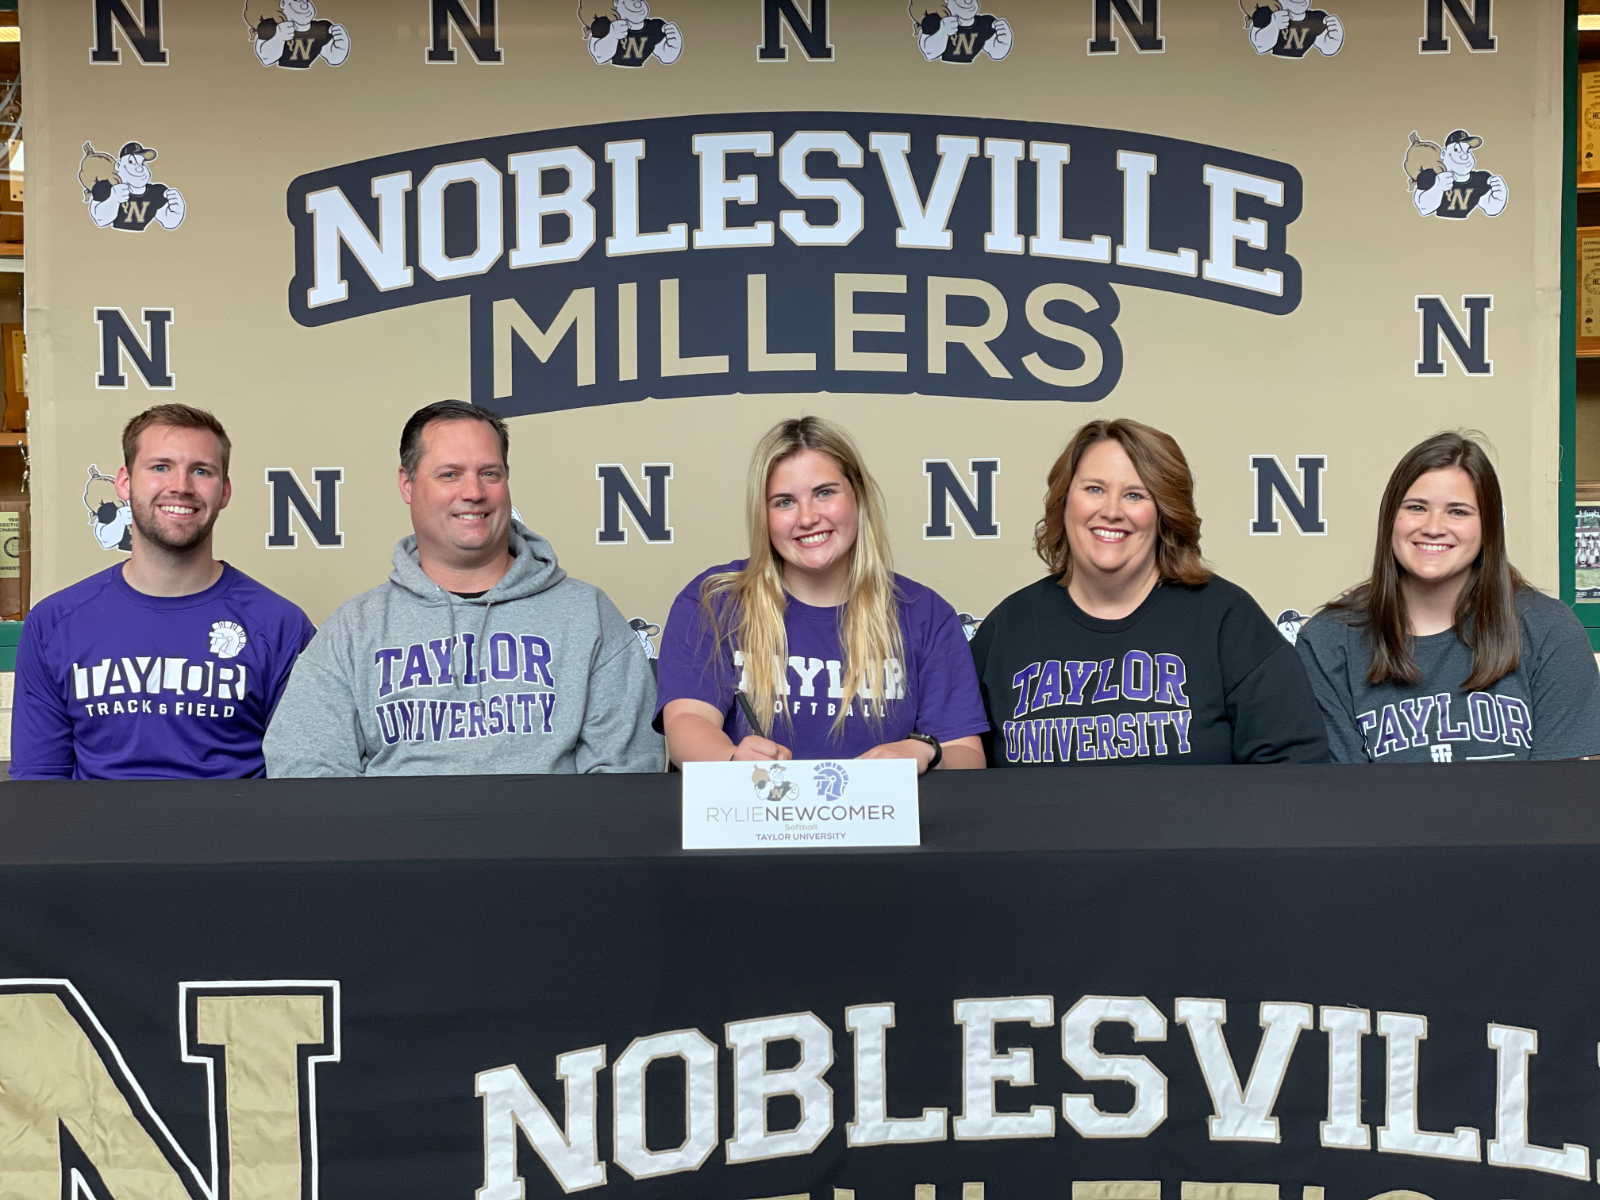 Rylie Newcomer signs with Taylor University